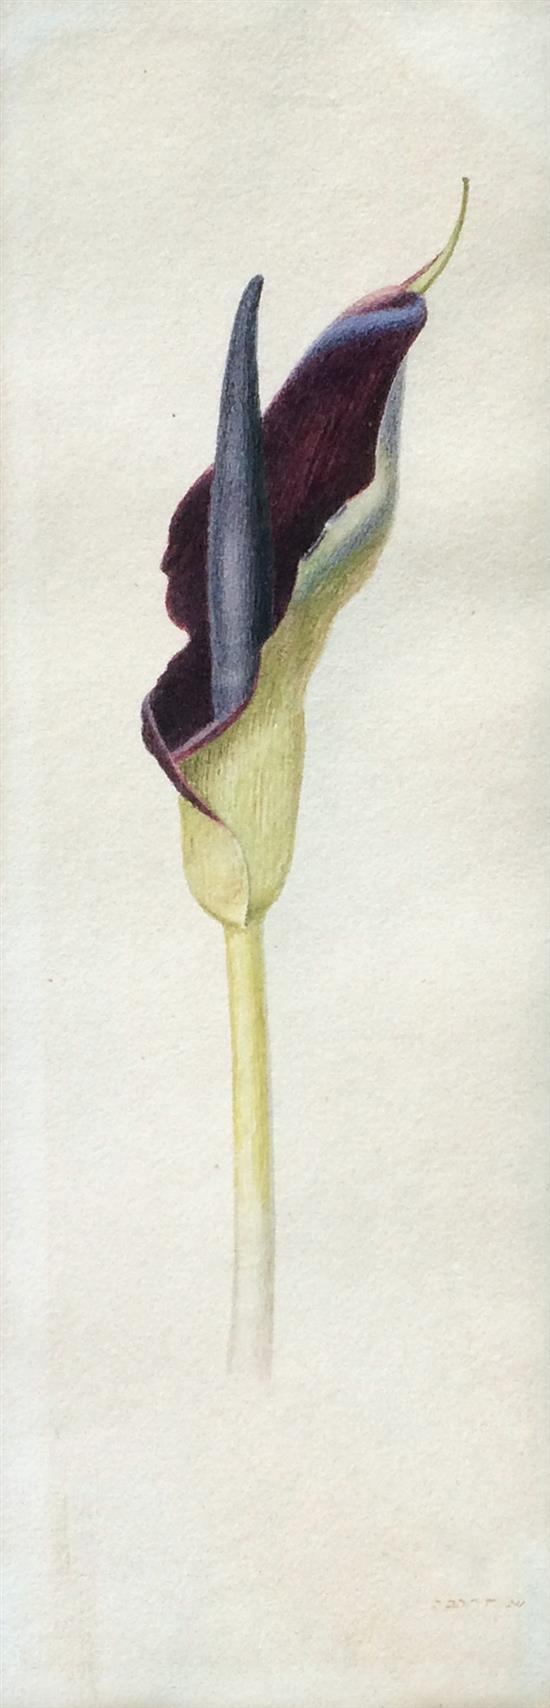 Shmuel Charuvi 1897-1965 (Israeli) Iris watercolor on paper